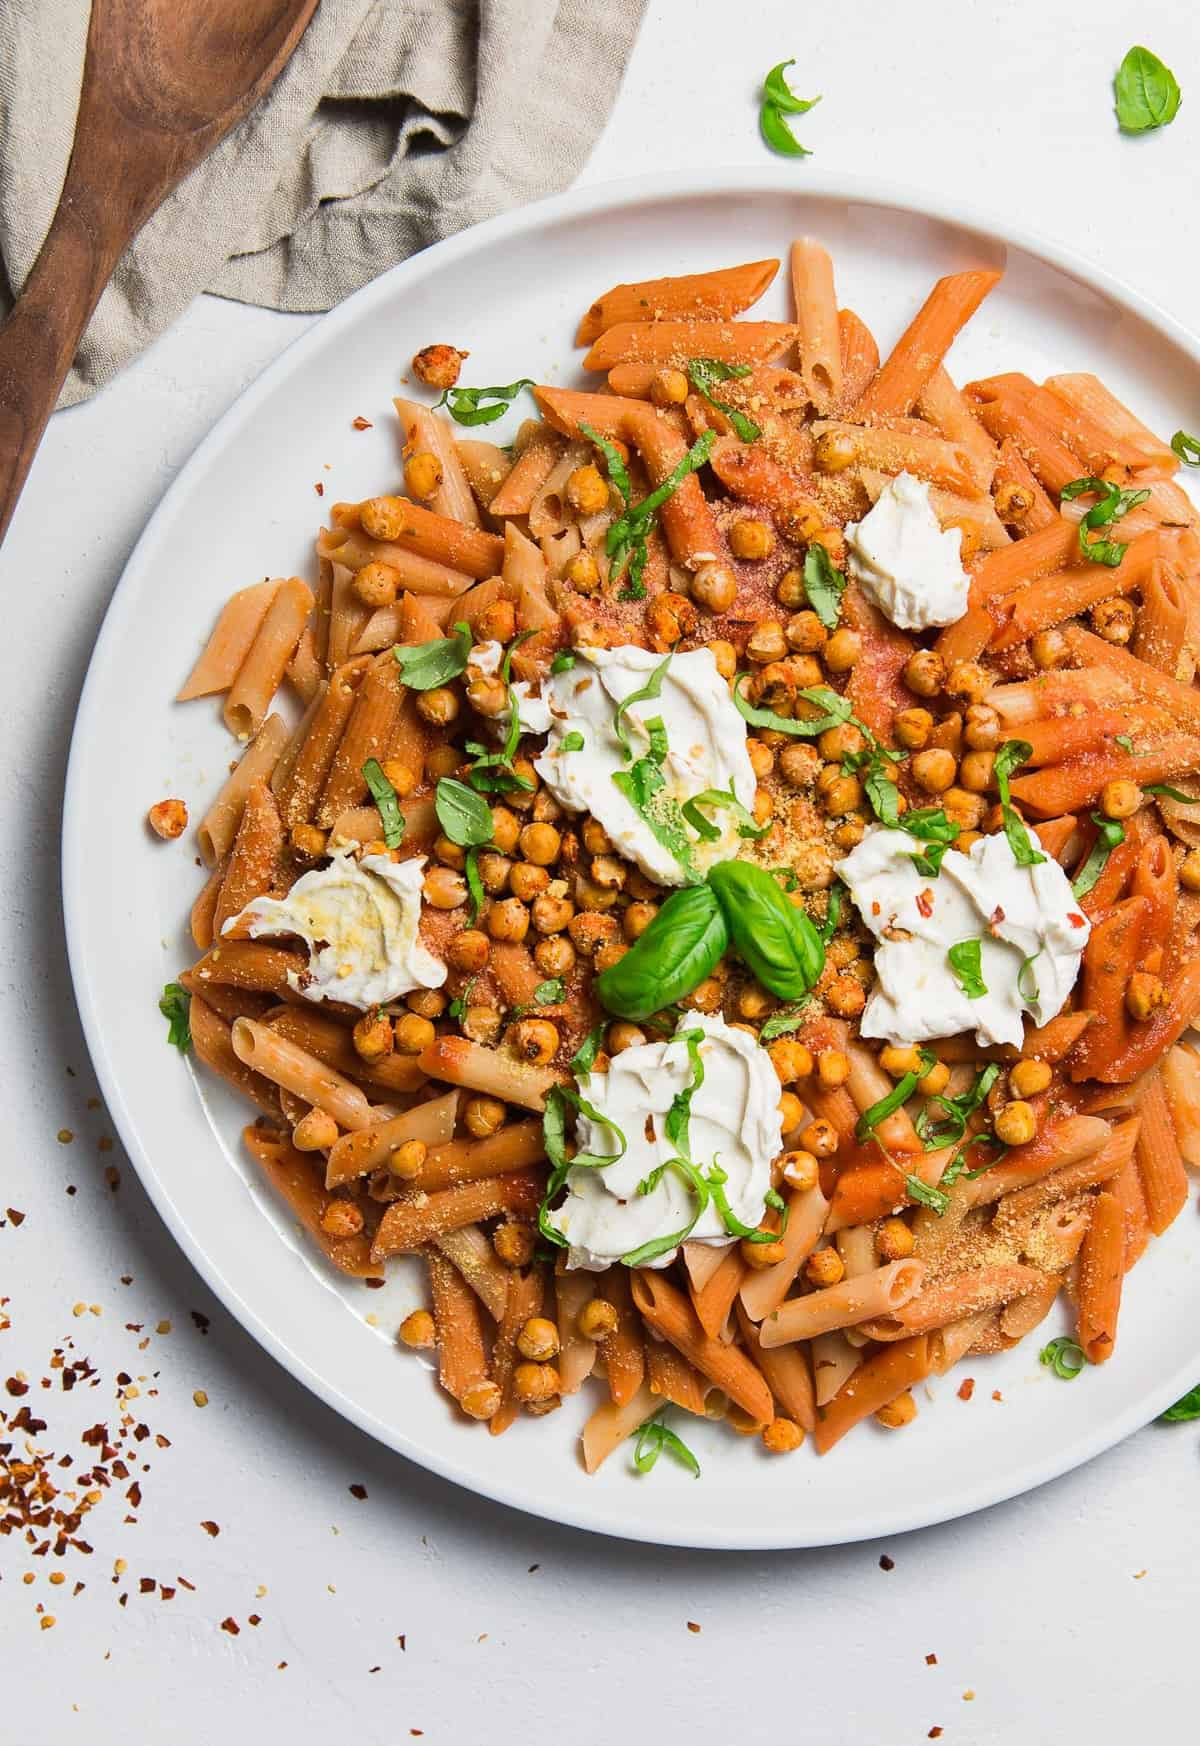 Easy Basil Pasta Sauce Topped with Roasted Chickpeas, plant based, vegan, vegetarian, whole food plant based, gluten free, recipe, wfpb, healthy, healthy vegan, oil free, no refined sugar, no oil, refined sugar free, dairy free, dinner party, entertaining, dinner, pasta